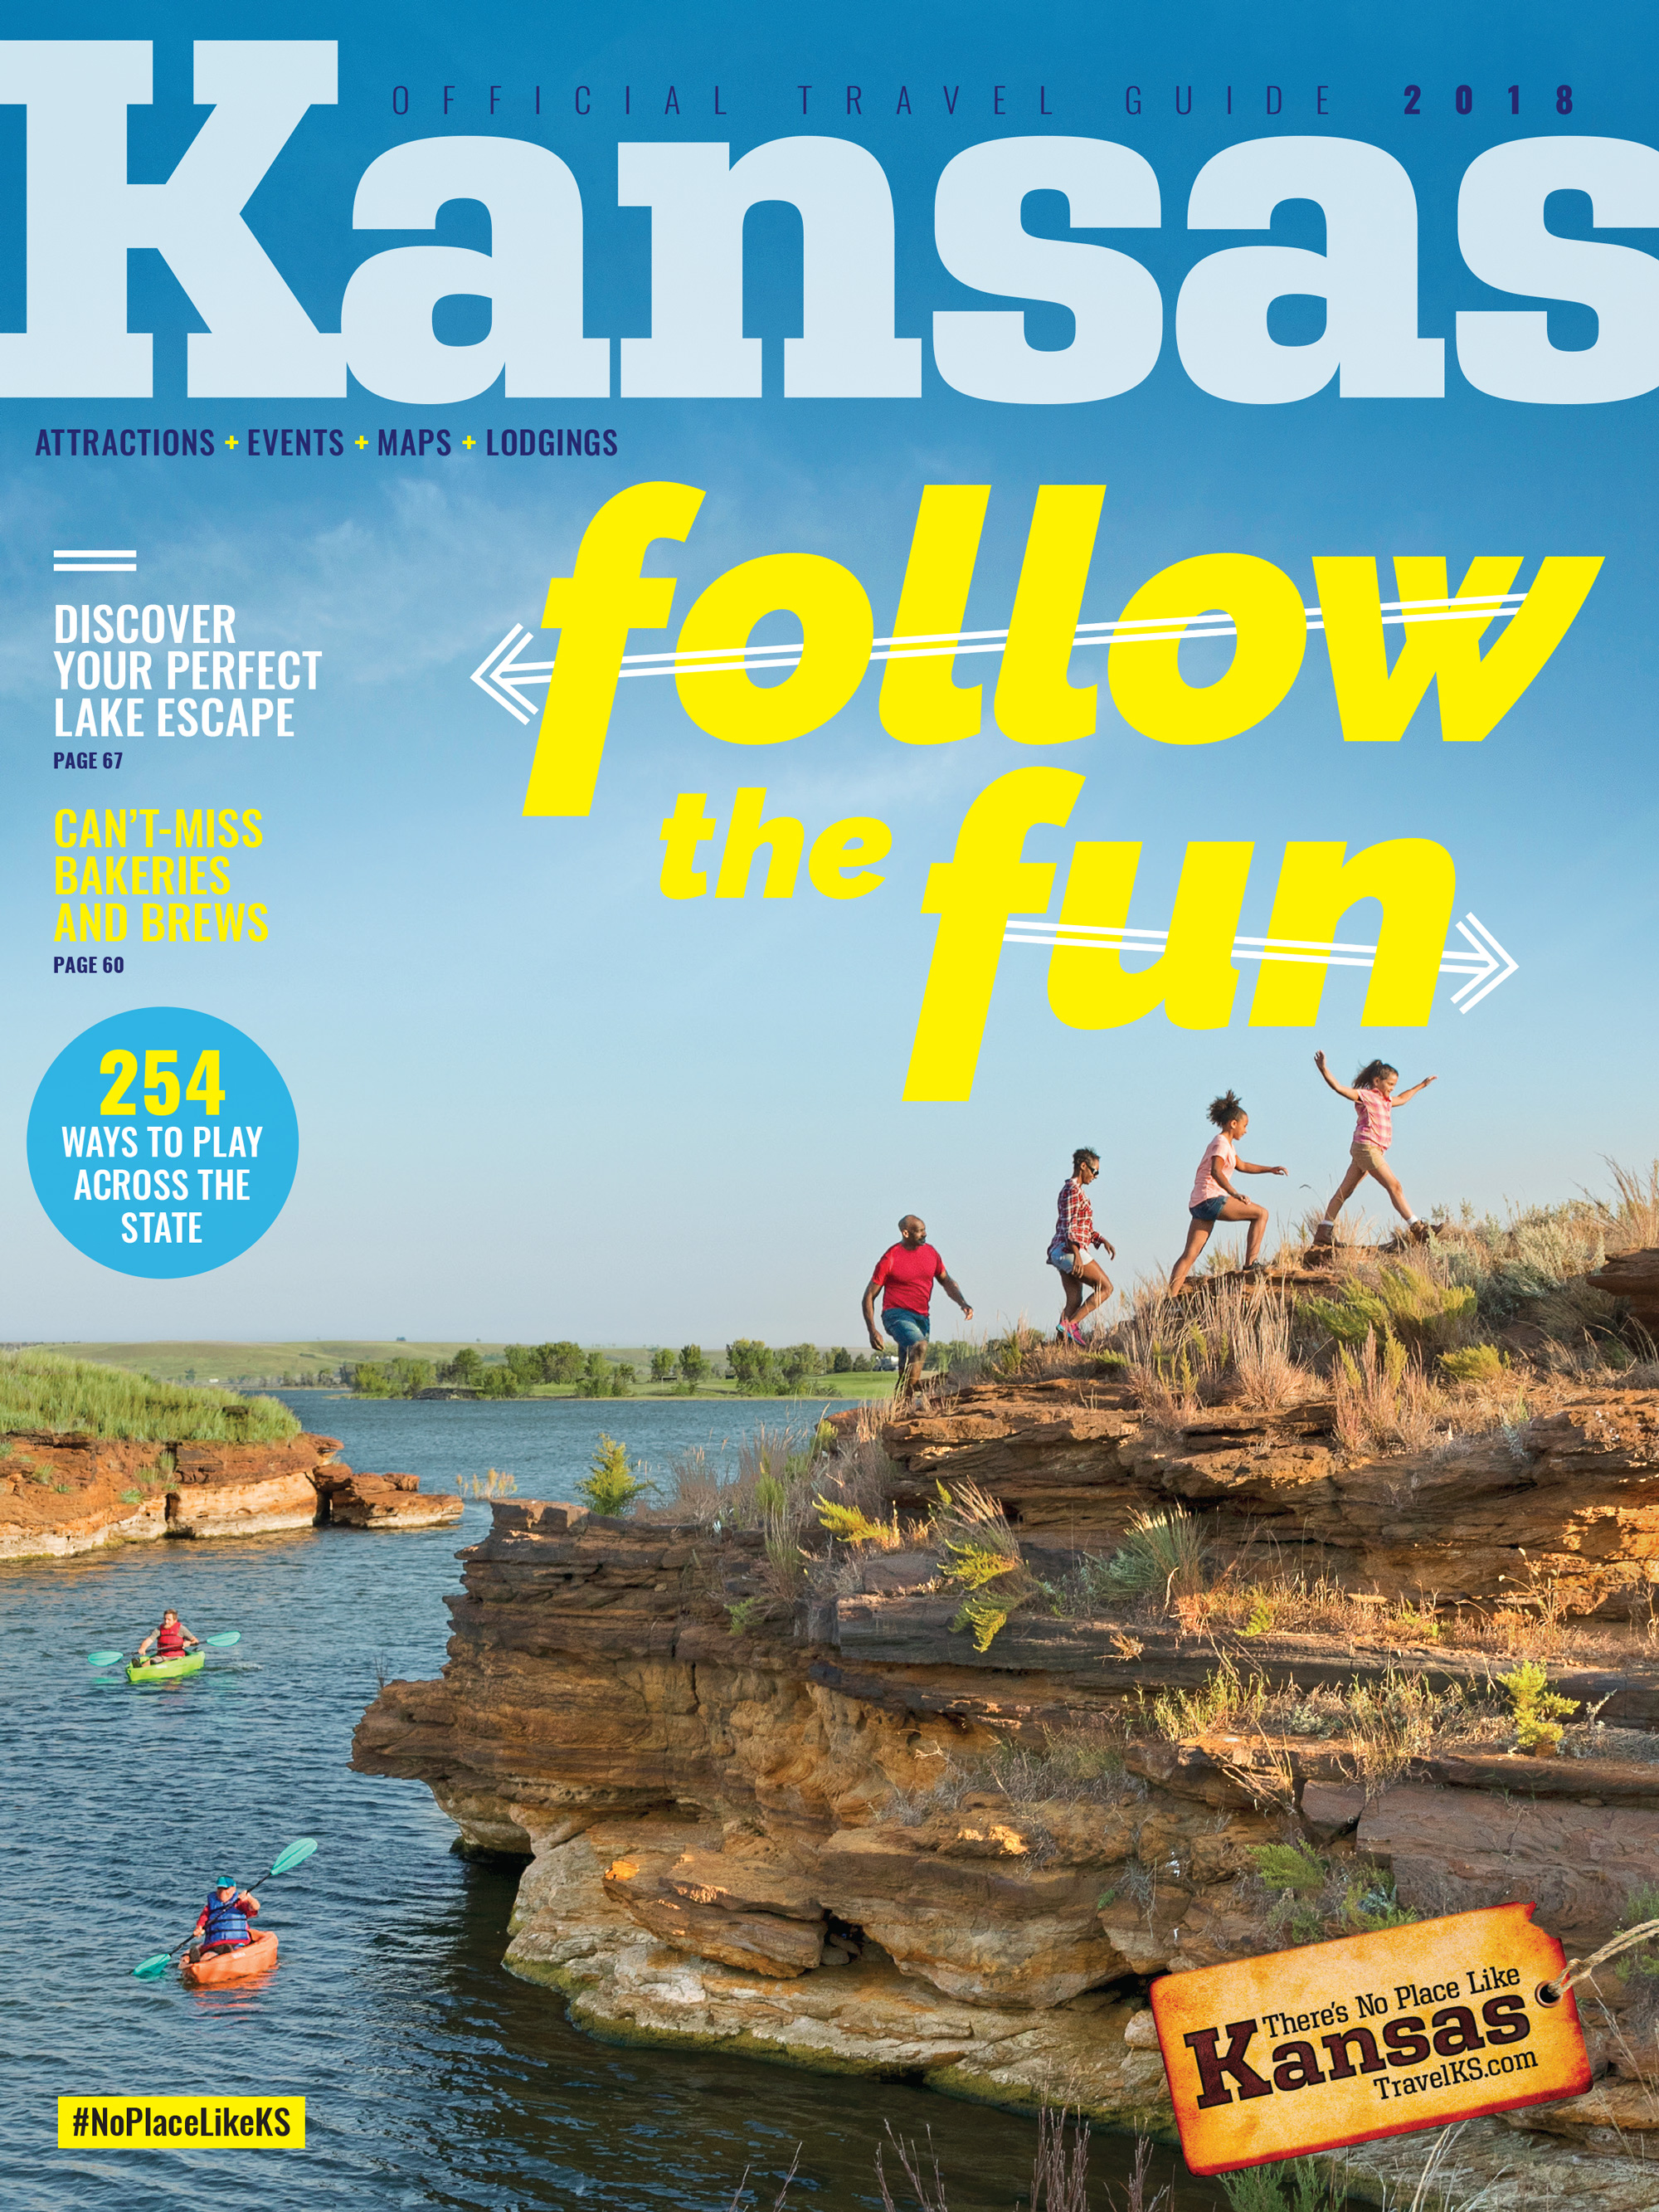 Kansas Travel Guide Cover